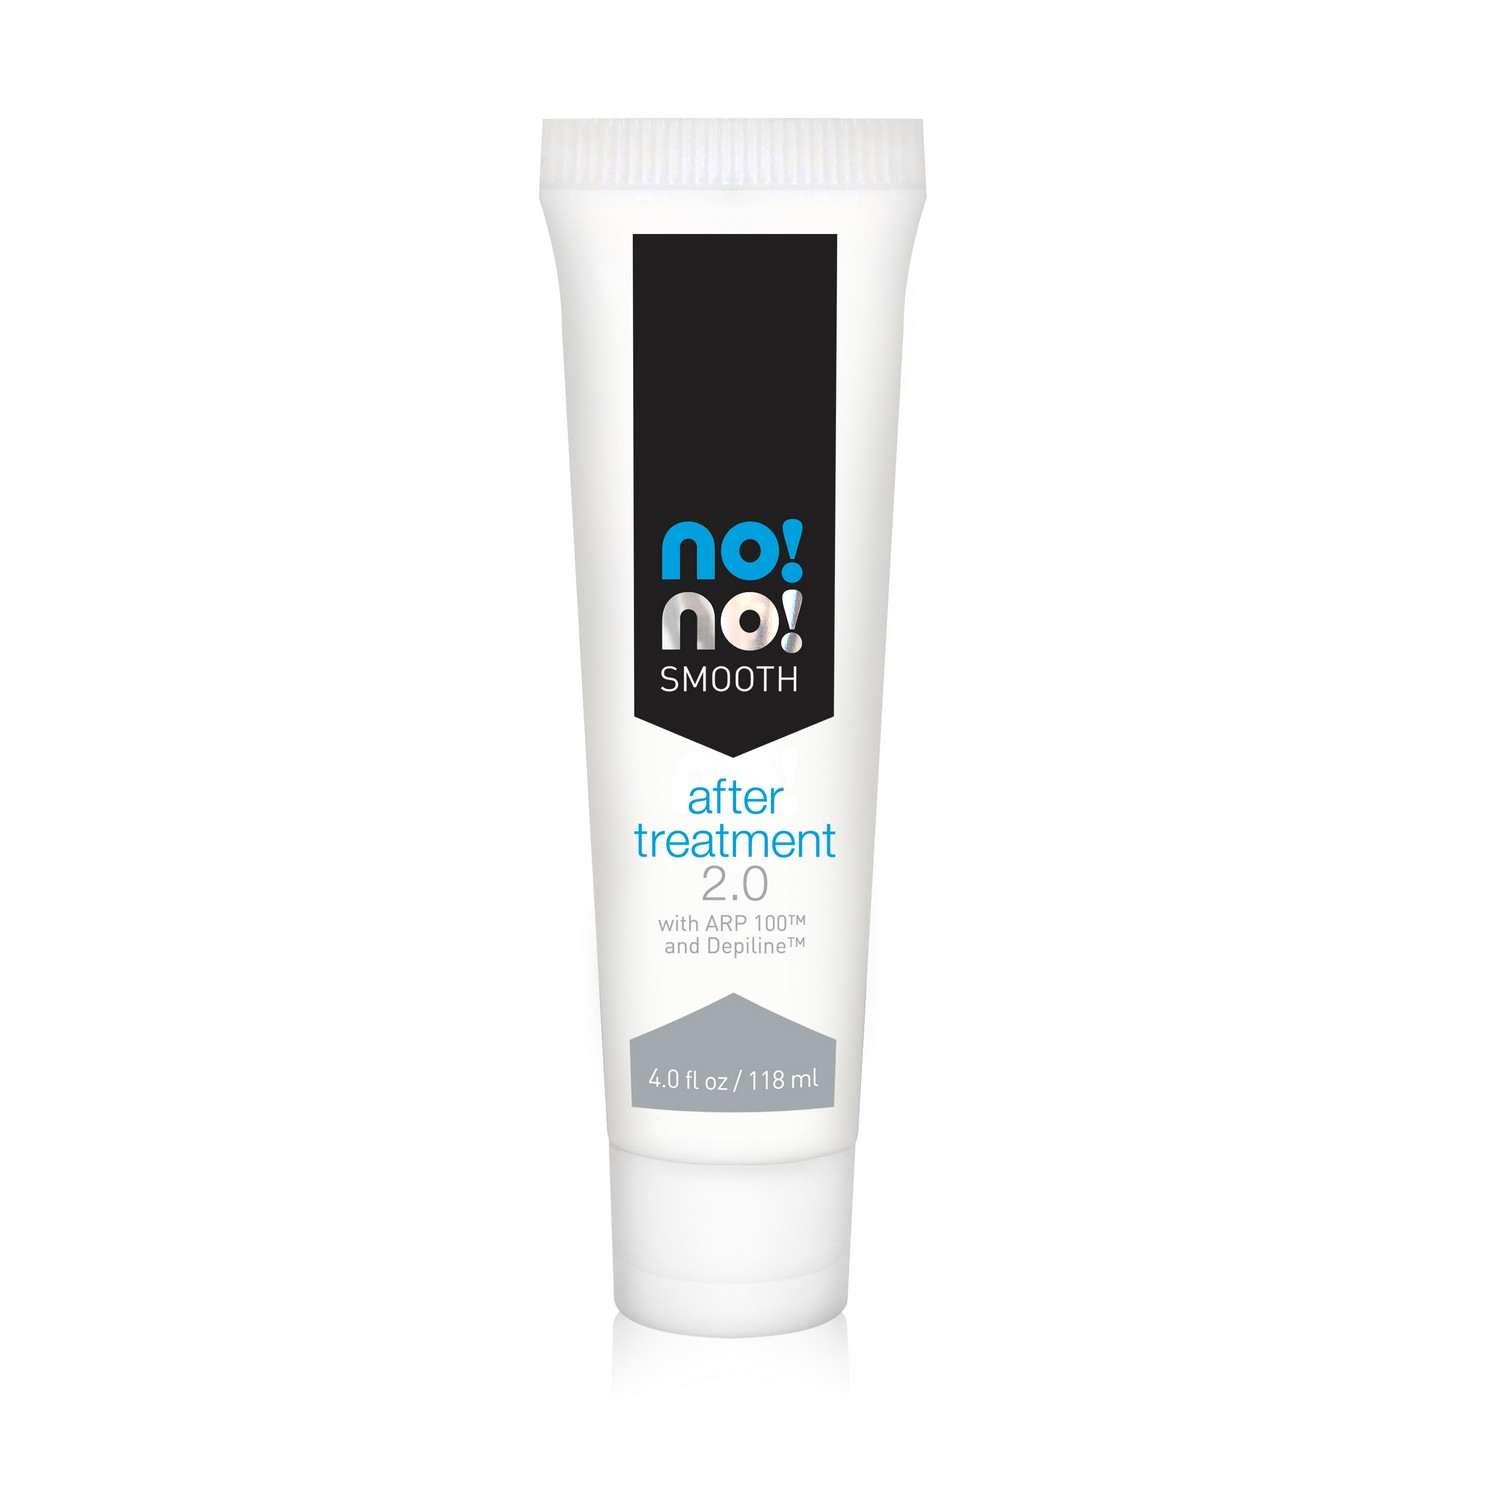 no!no! SMOOTH after treatment cream 2.0 (4.0 fl oz / 118 ml)